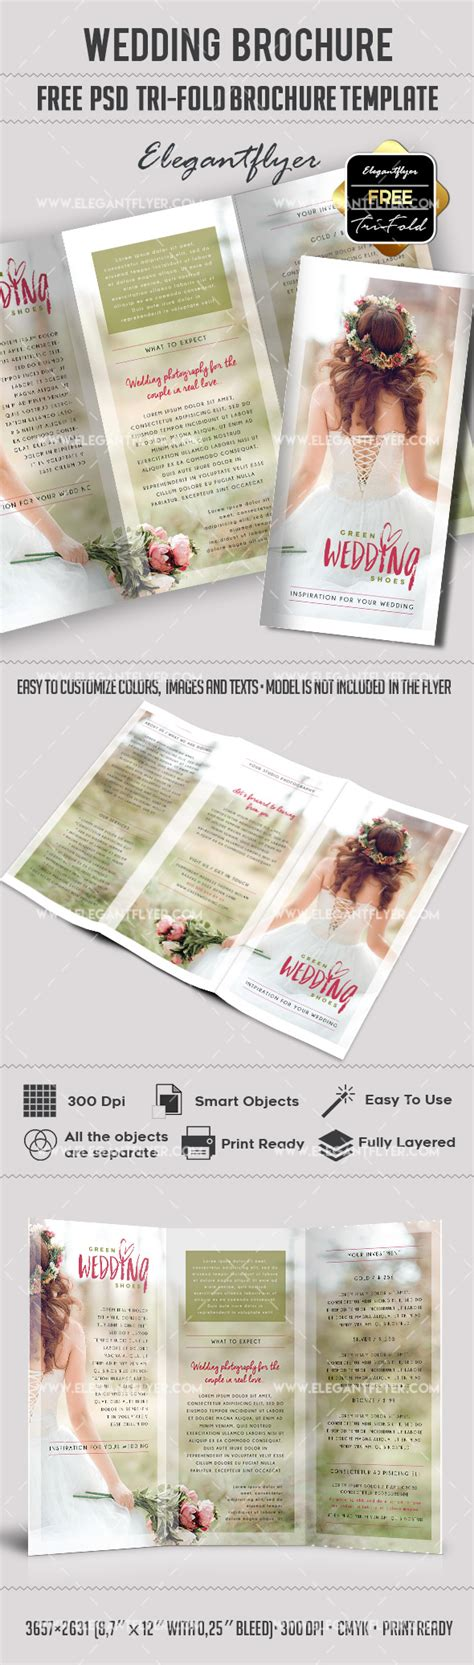 Wedding Free Tri Fold Psd Brochure Template By Elegantflyer Free Tri Fold Wedding Brochure Templates